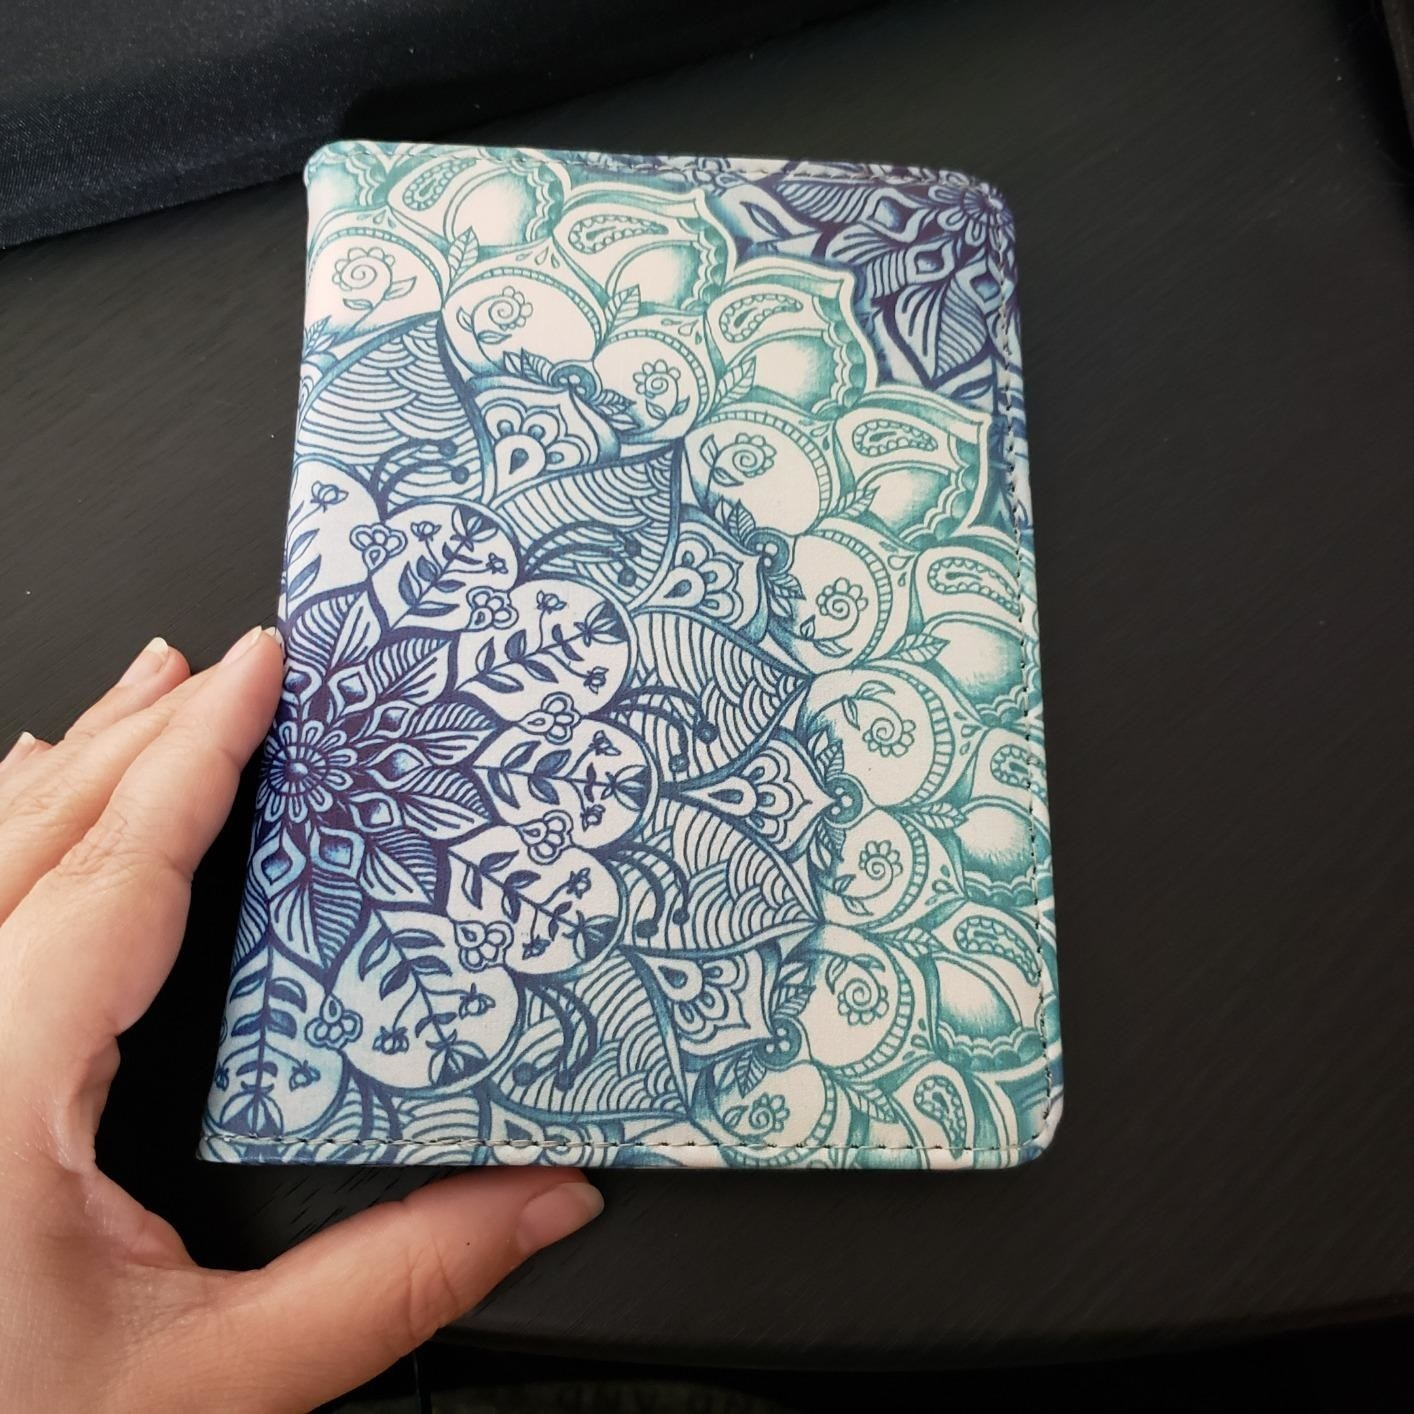 reviewer's kindle case with a blue and teal floral design